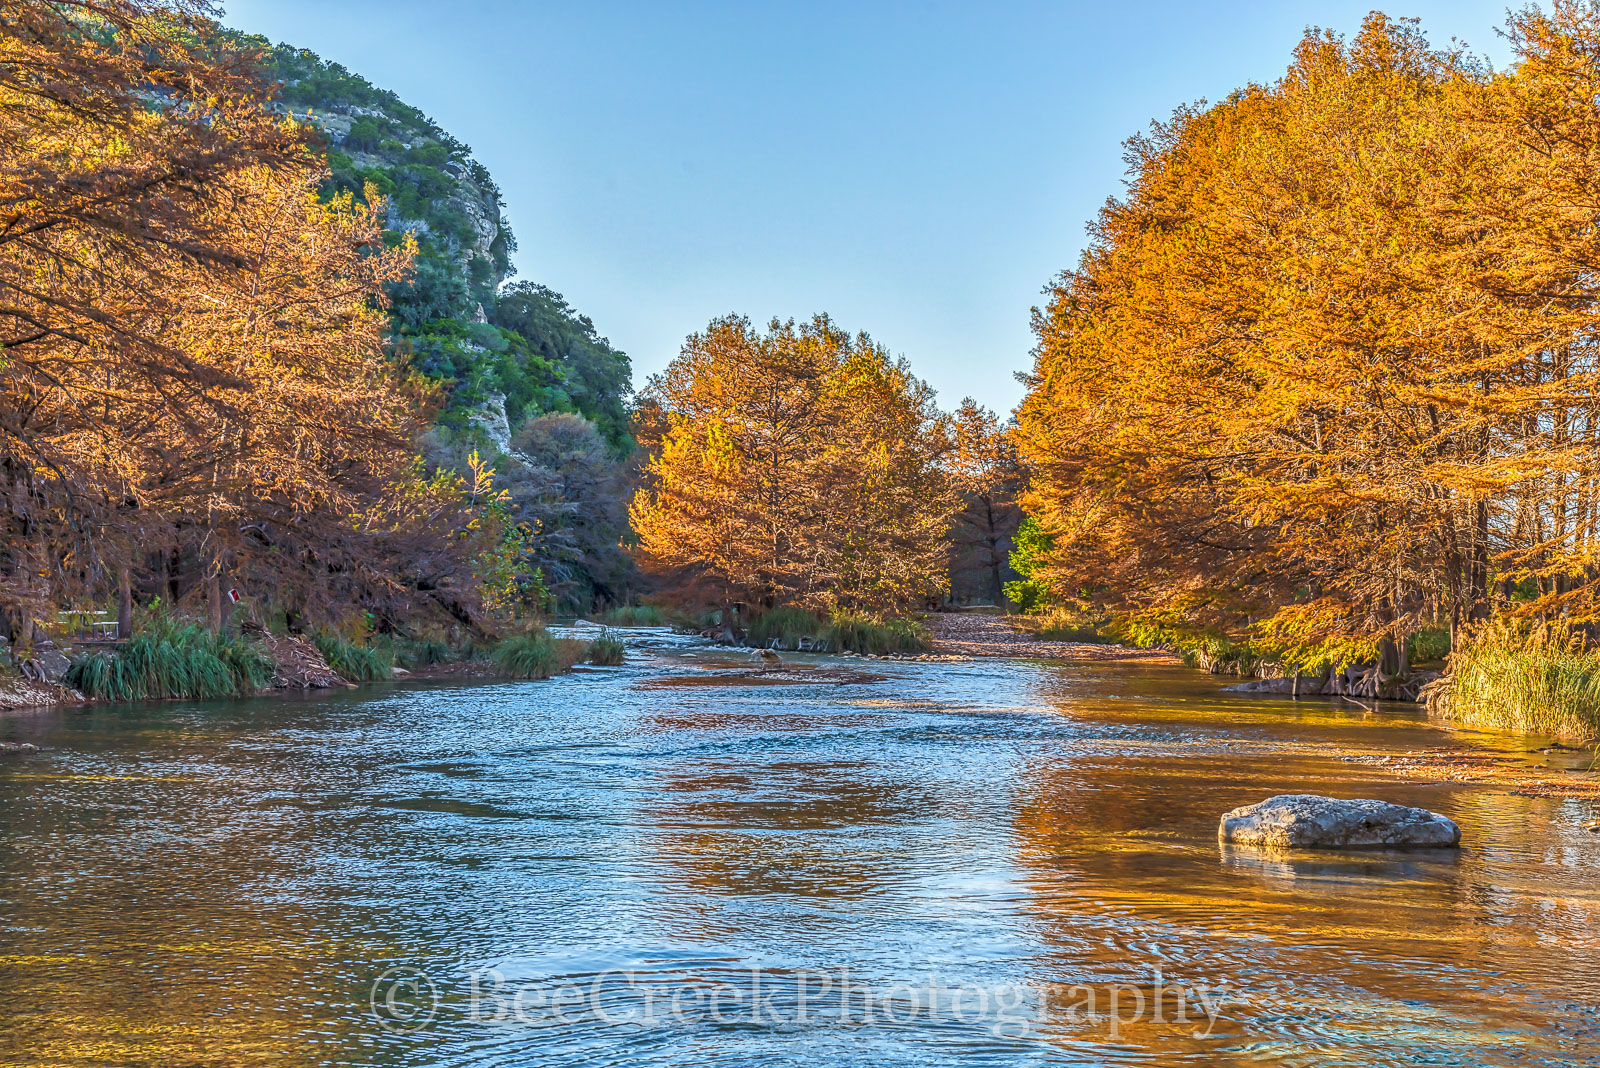 Concan, Frio River, Hill Country, River, clear, colors, cool, cypress, fall, fall landscapes, flowing, images of Texas, landscape, landscapes, orange, photos of Texas, pictures of texas, rocks, rural, photo